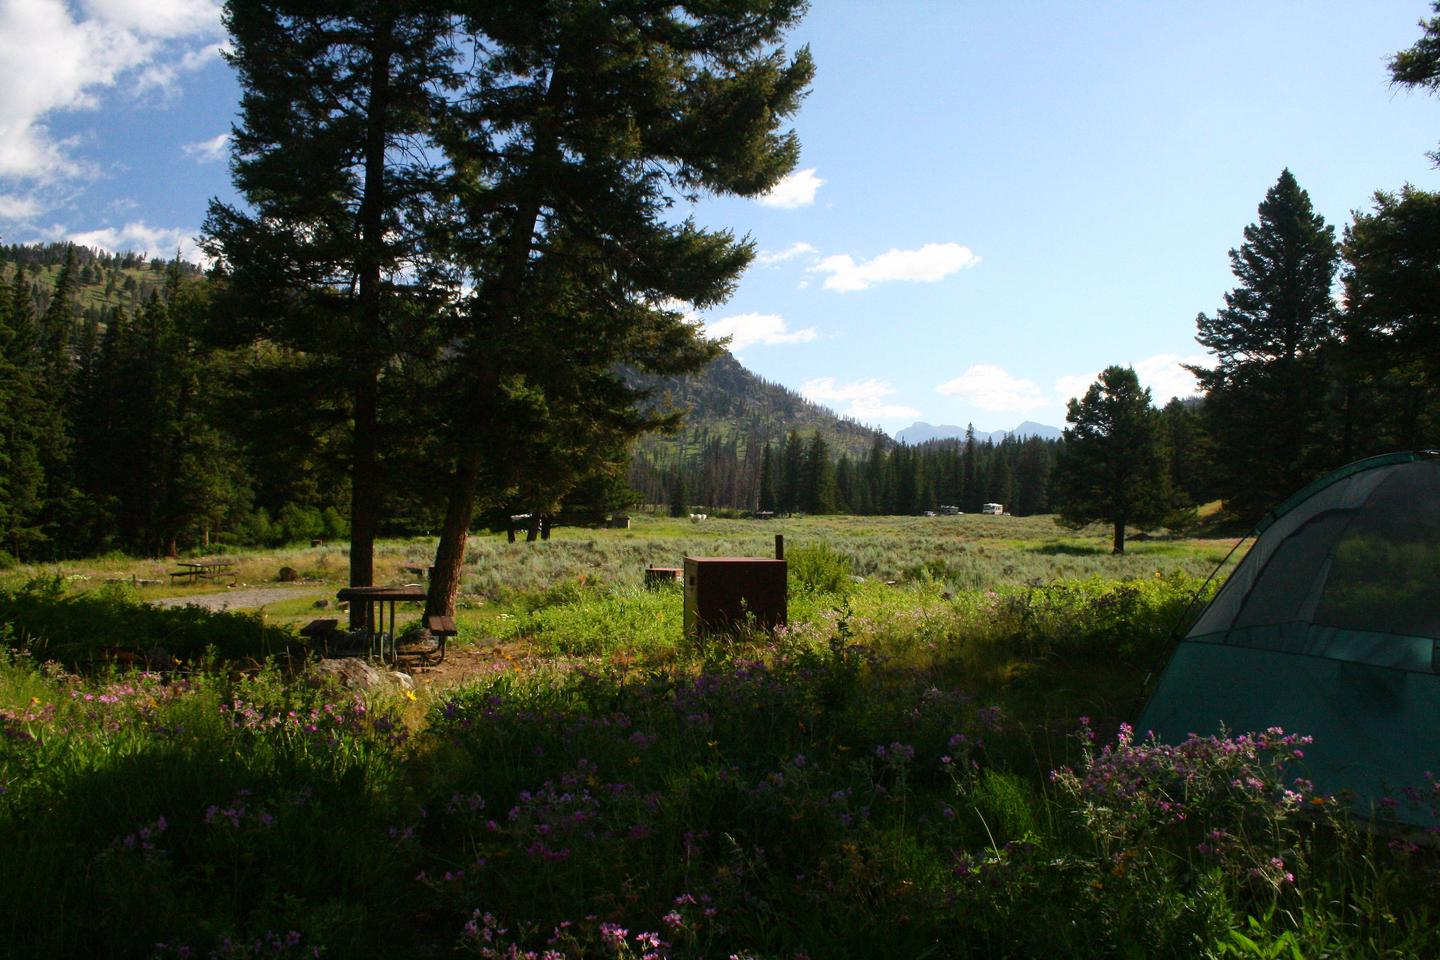 Slough Creek Campground site #14